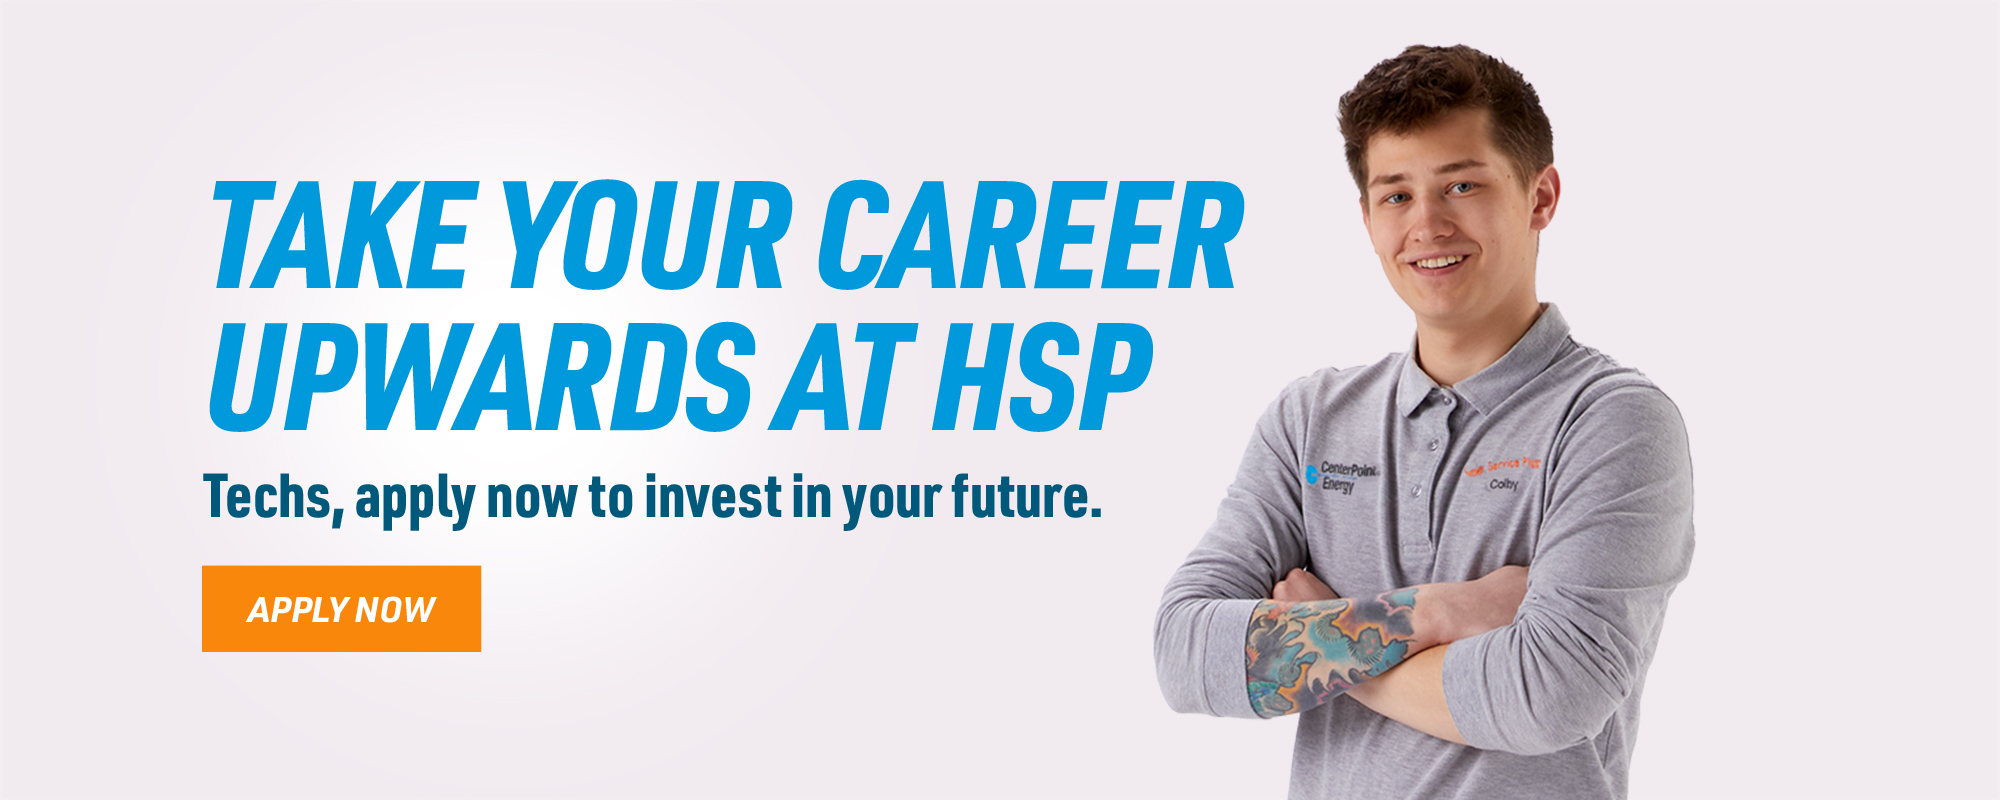 Take Your Career Upwards At HSP Techs, apply now to invest in your future